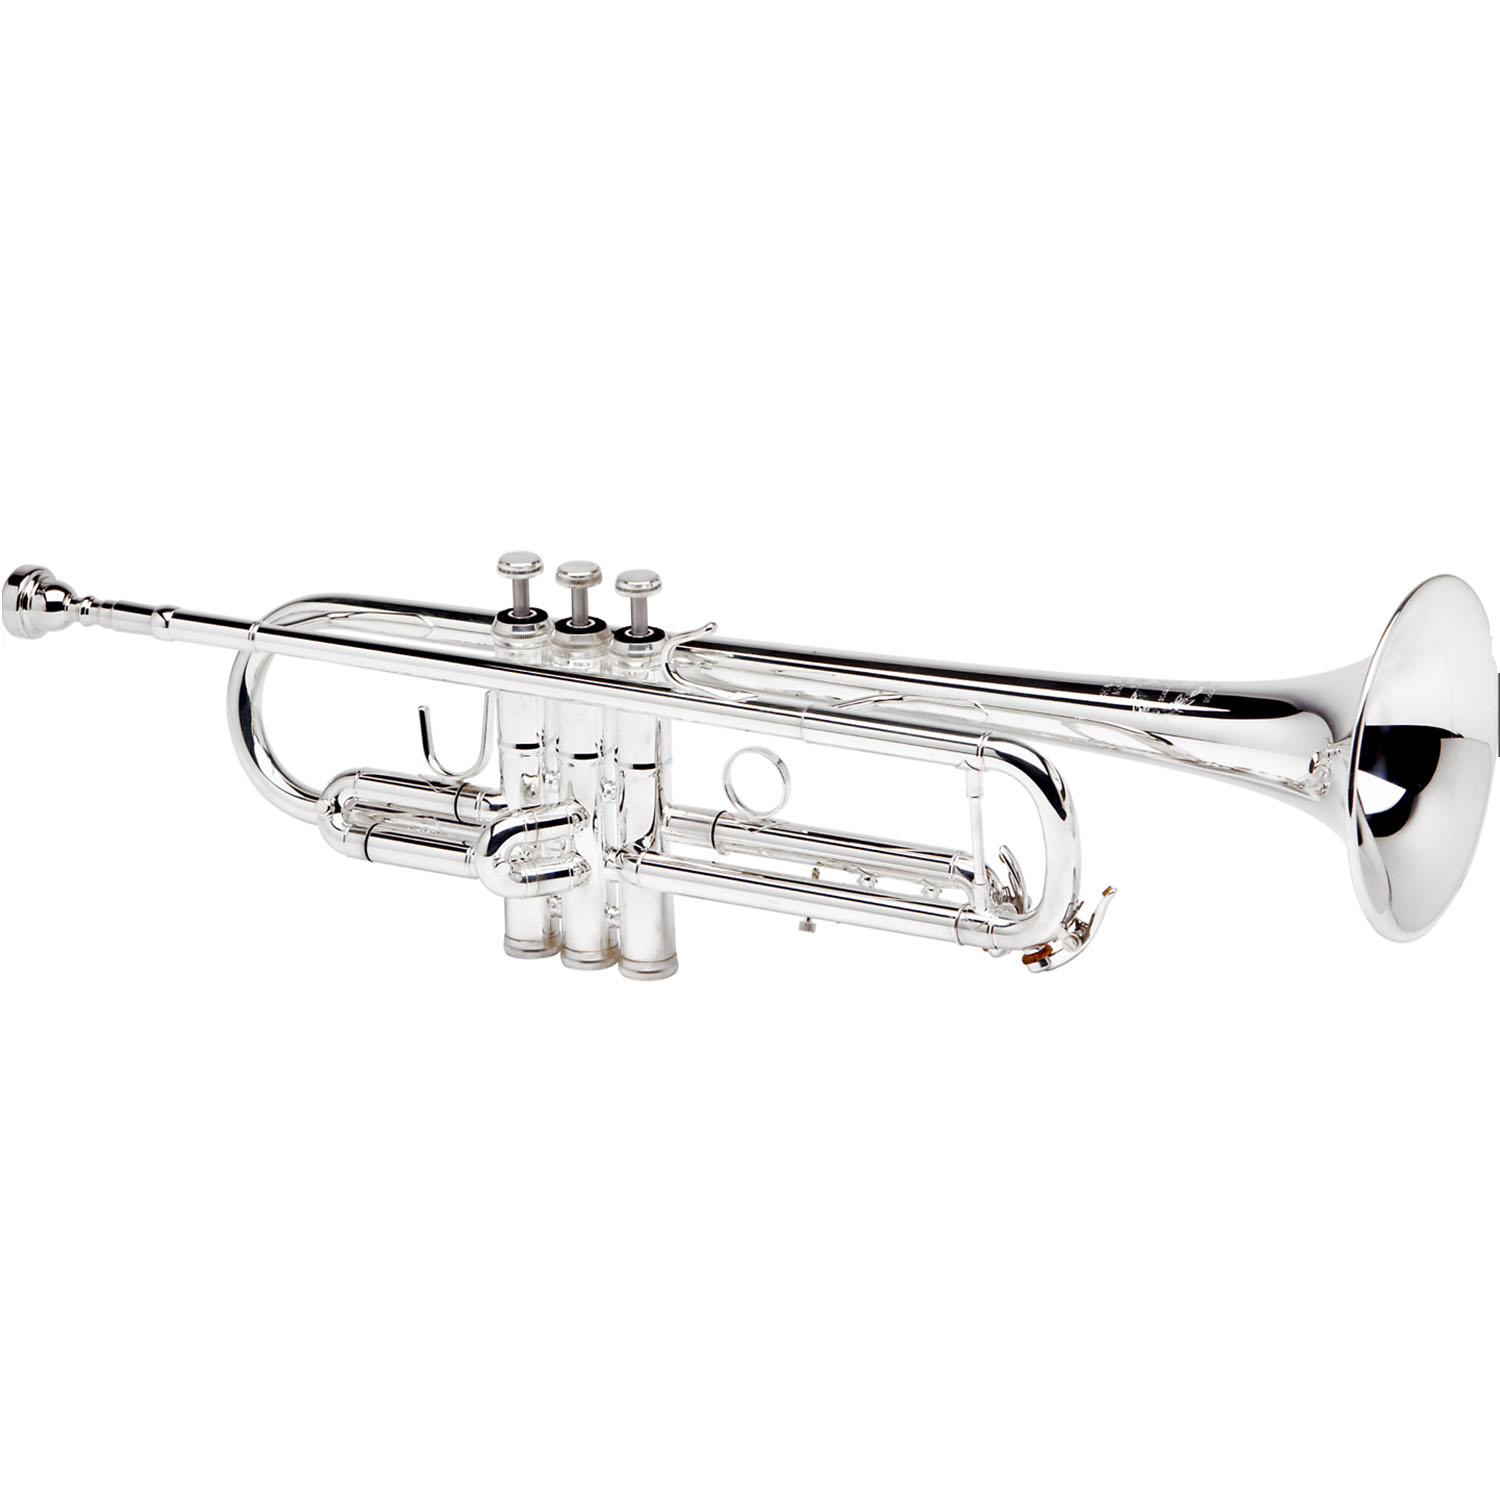 """B&S """"Challenger II"""" Professional Bb Trumpet - #25 Bell - Silver Plating - Reverse Leadpipe"""